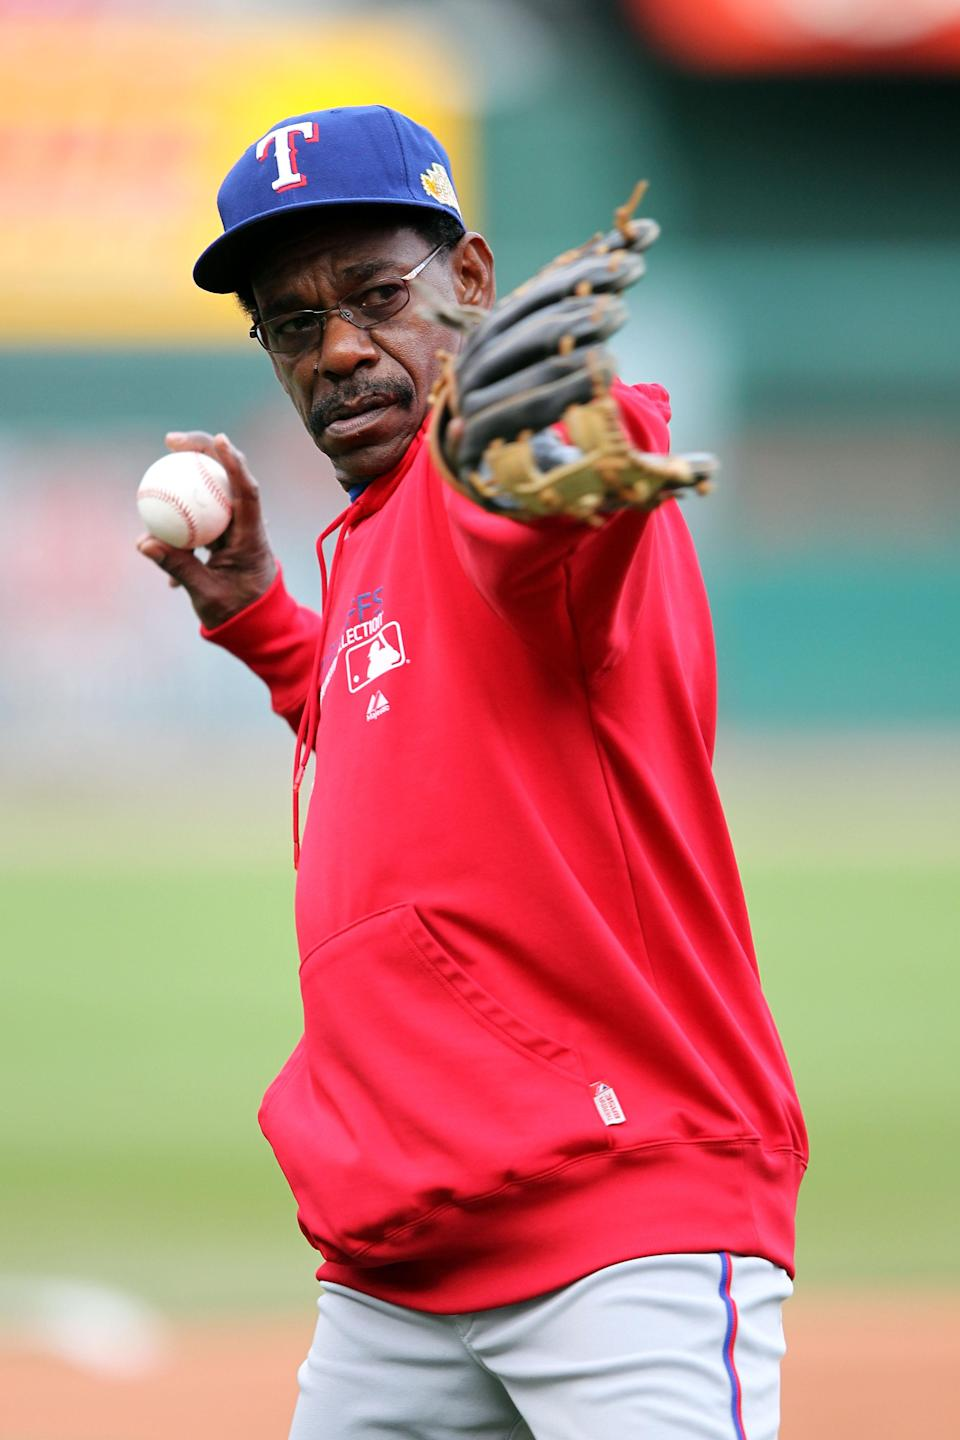 ST LOUIS, MO - OCTOBER 20: Manager Ron Washington of the Texas Rangers throws a ball on the field during practice prior to Game Two of the MLB World Series against the St. Louis Cardinals at Busch Stadium on October 20, 2011 in St Louis, Missouri. (Photo by Jamie Squire/Getty Images)